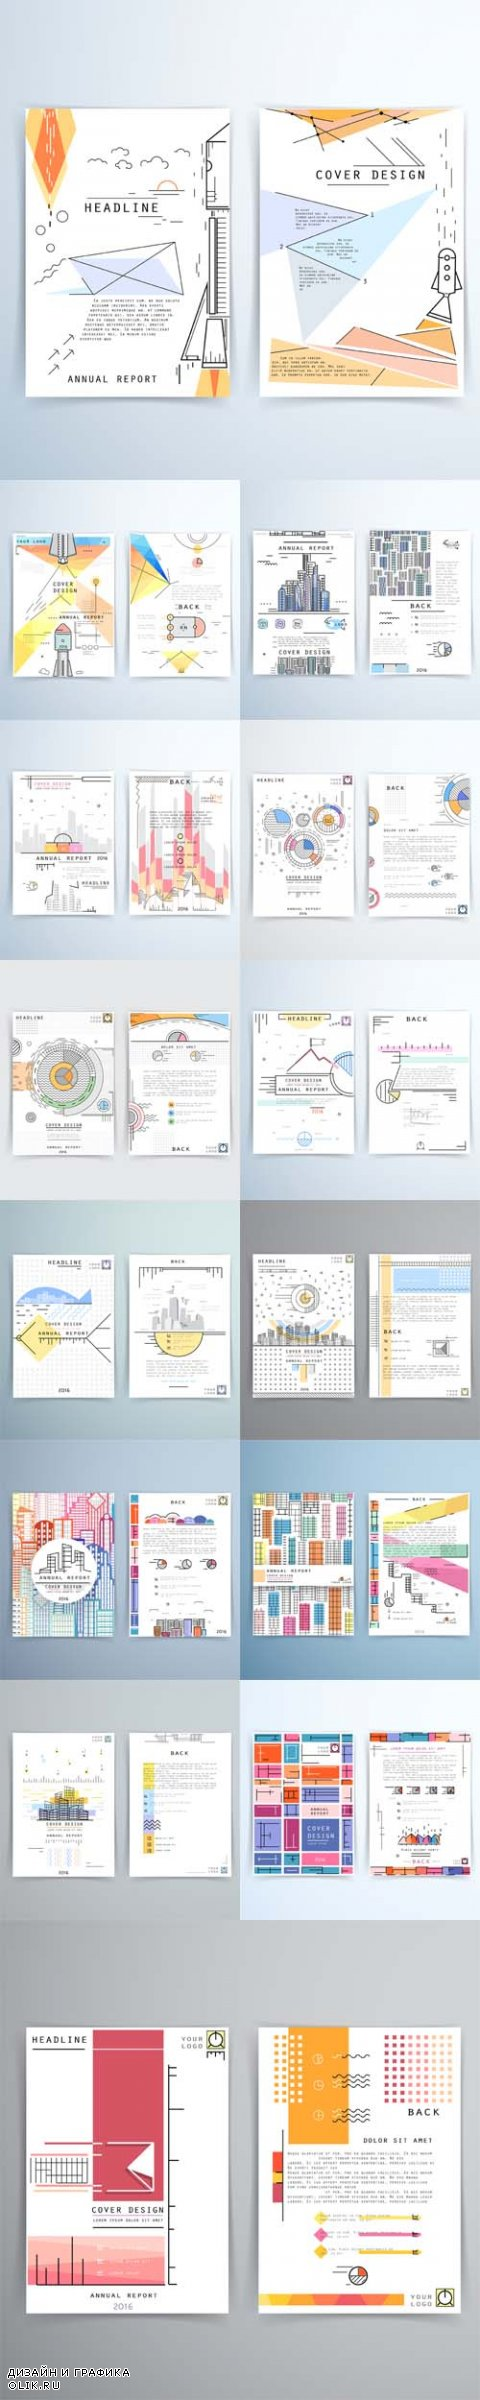 Vector Cover design annual report. Template brochures, flyers, business presentations